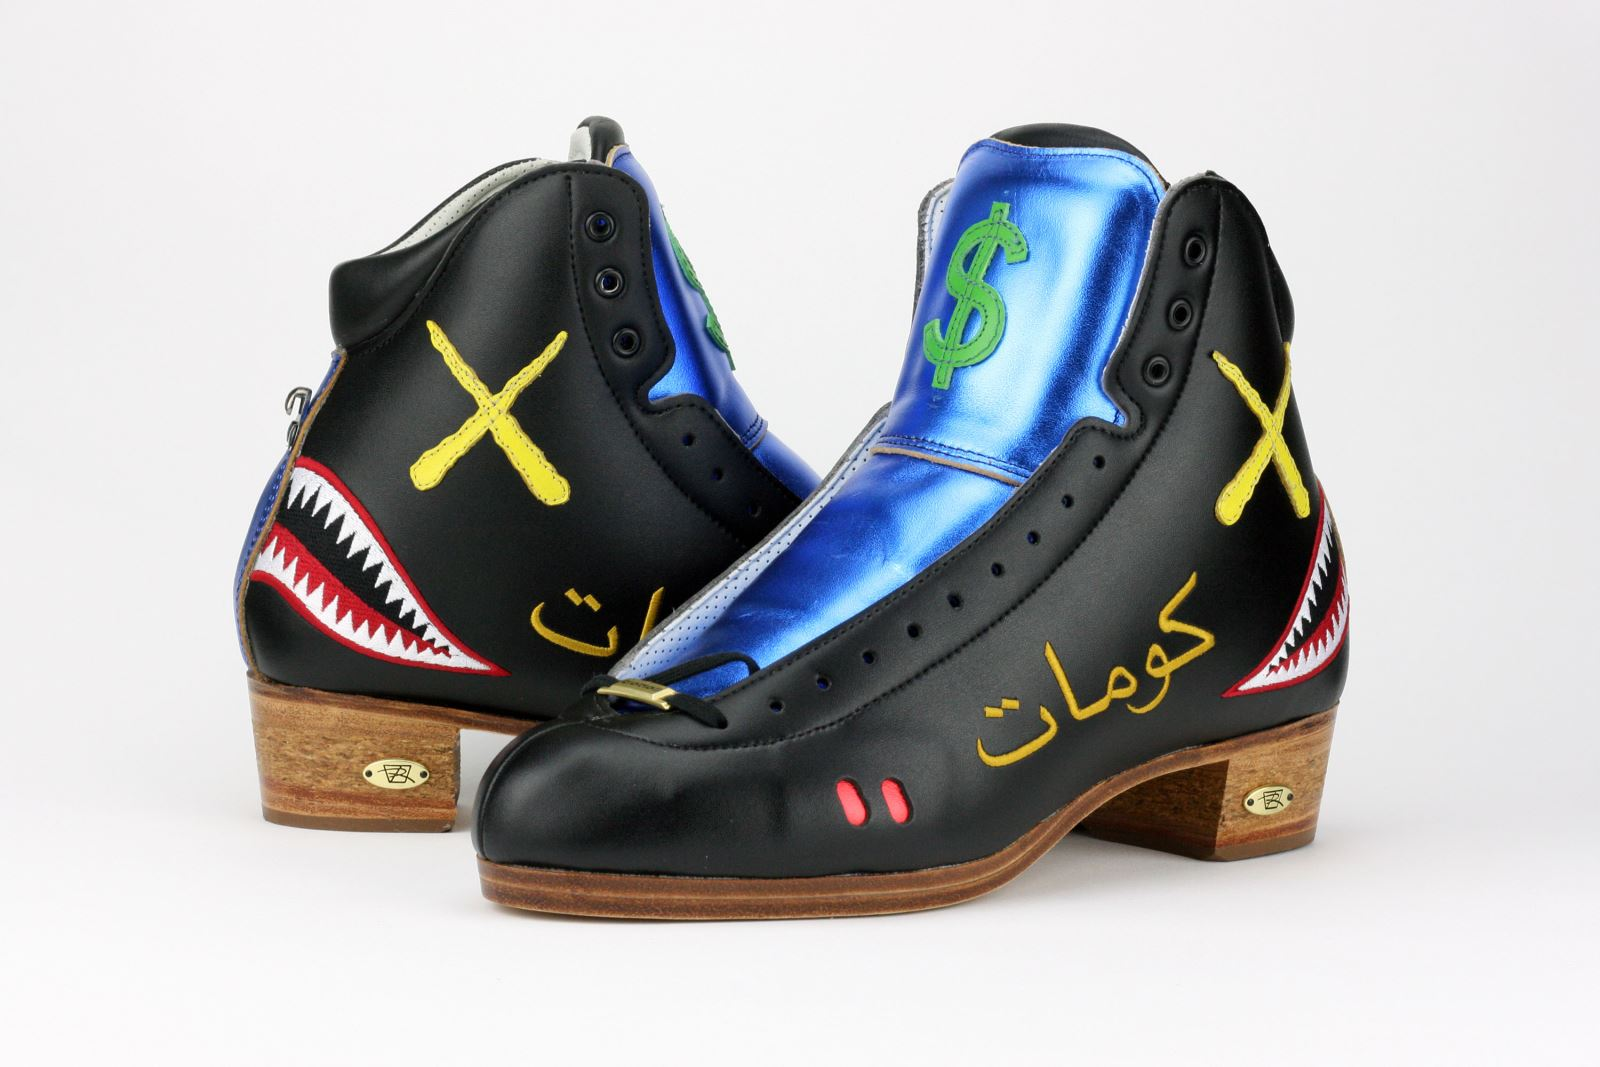 Team Riedell Skater T-Stacks' Custom Riedell 3200 Boots